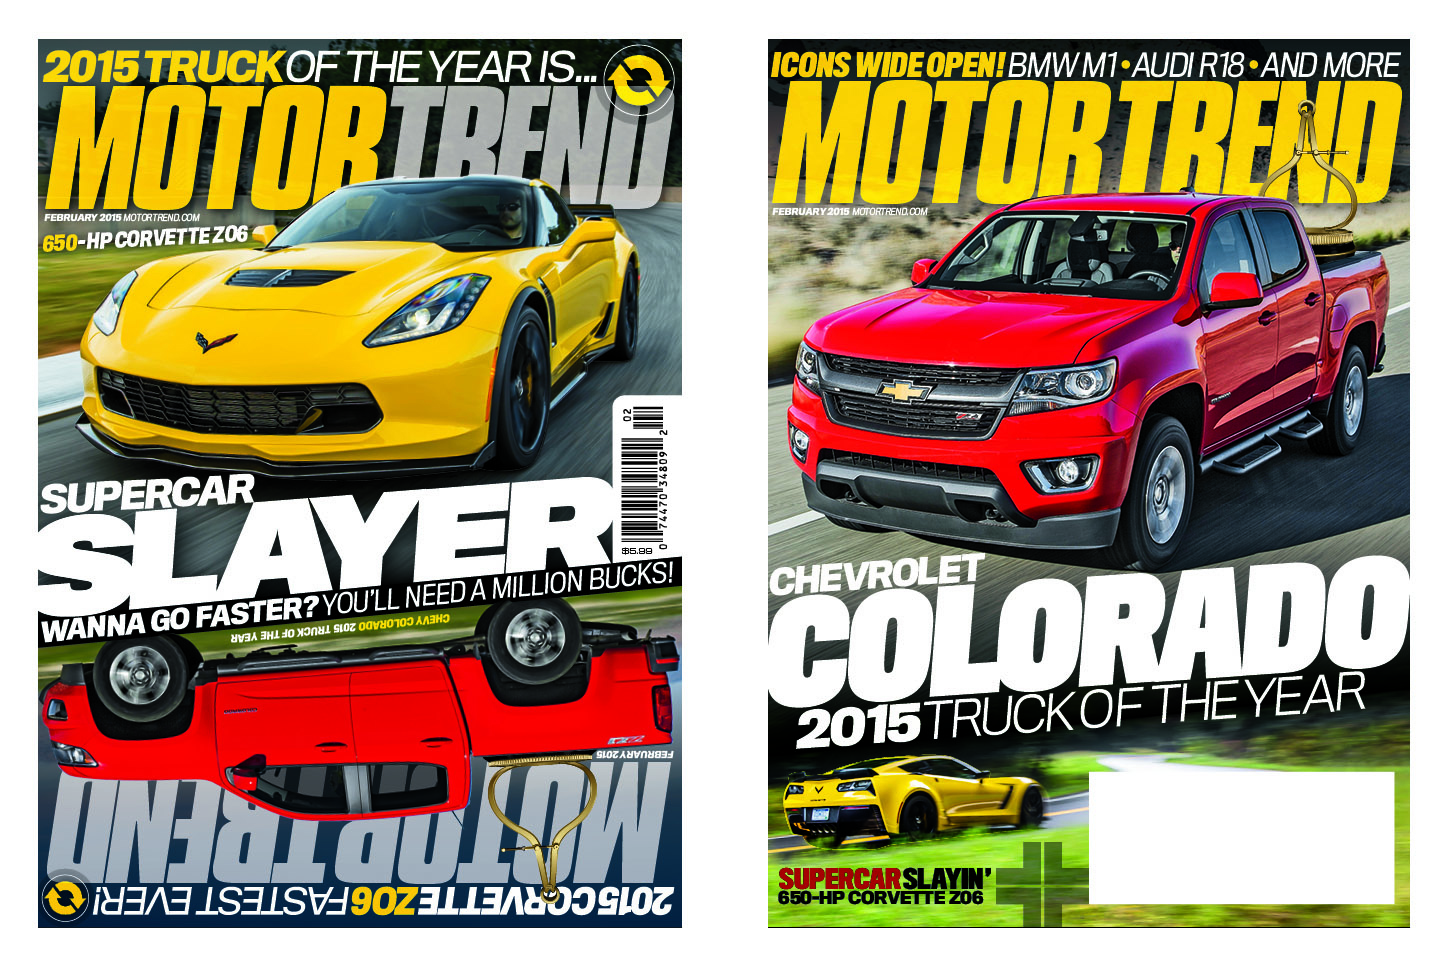 Chevy colorado 2015 motor trend truck of the year the for Motor trend truck of the year list